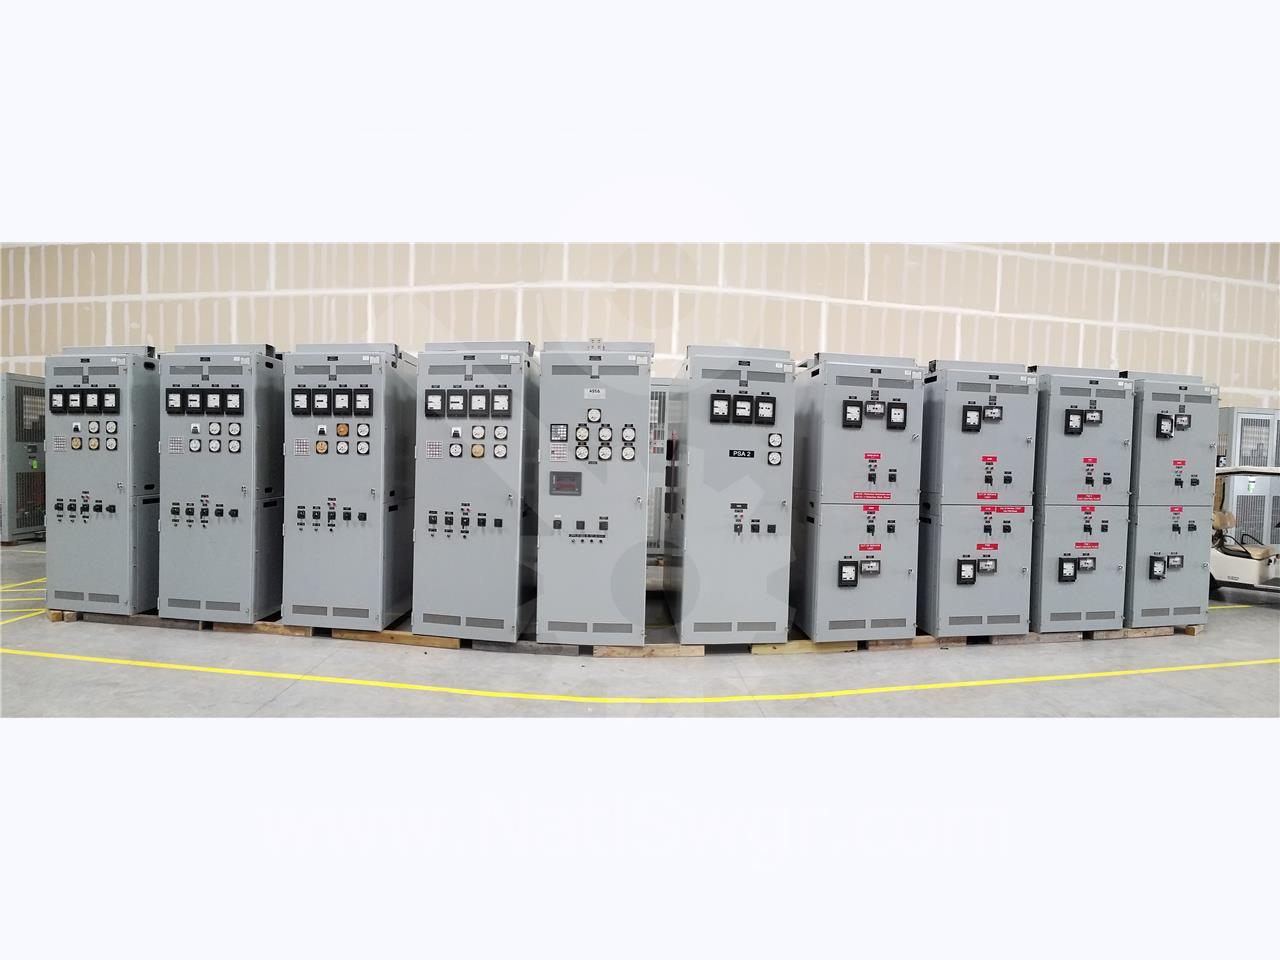 5KV GE / General Electric VB/VB1 INDOOR SWITCHGEAR LINE UP 4-GENERATOR SECTIONS, 1-CONTROL SECTION, 1-TIE SECTION, 4-FEEDER SECTIONS